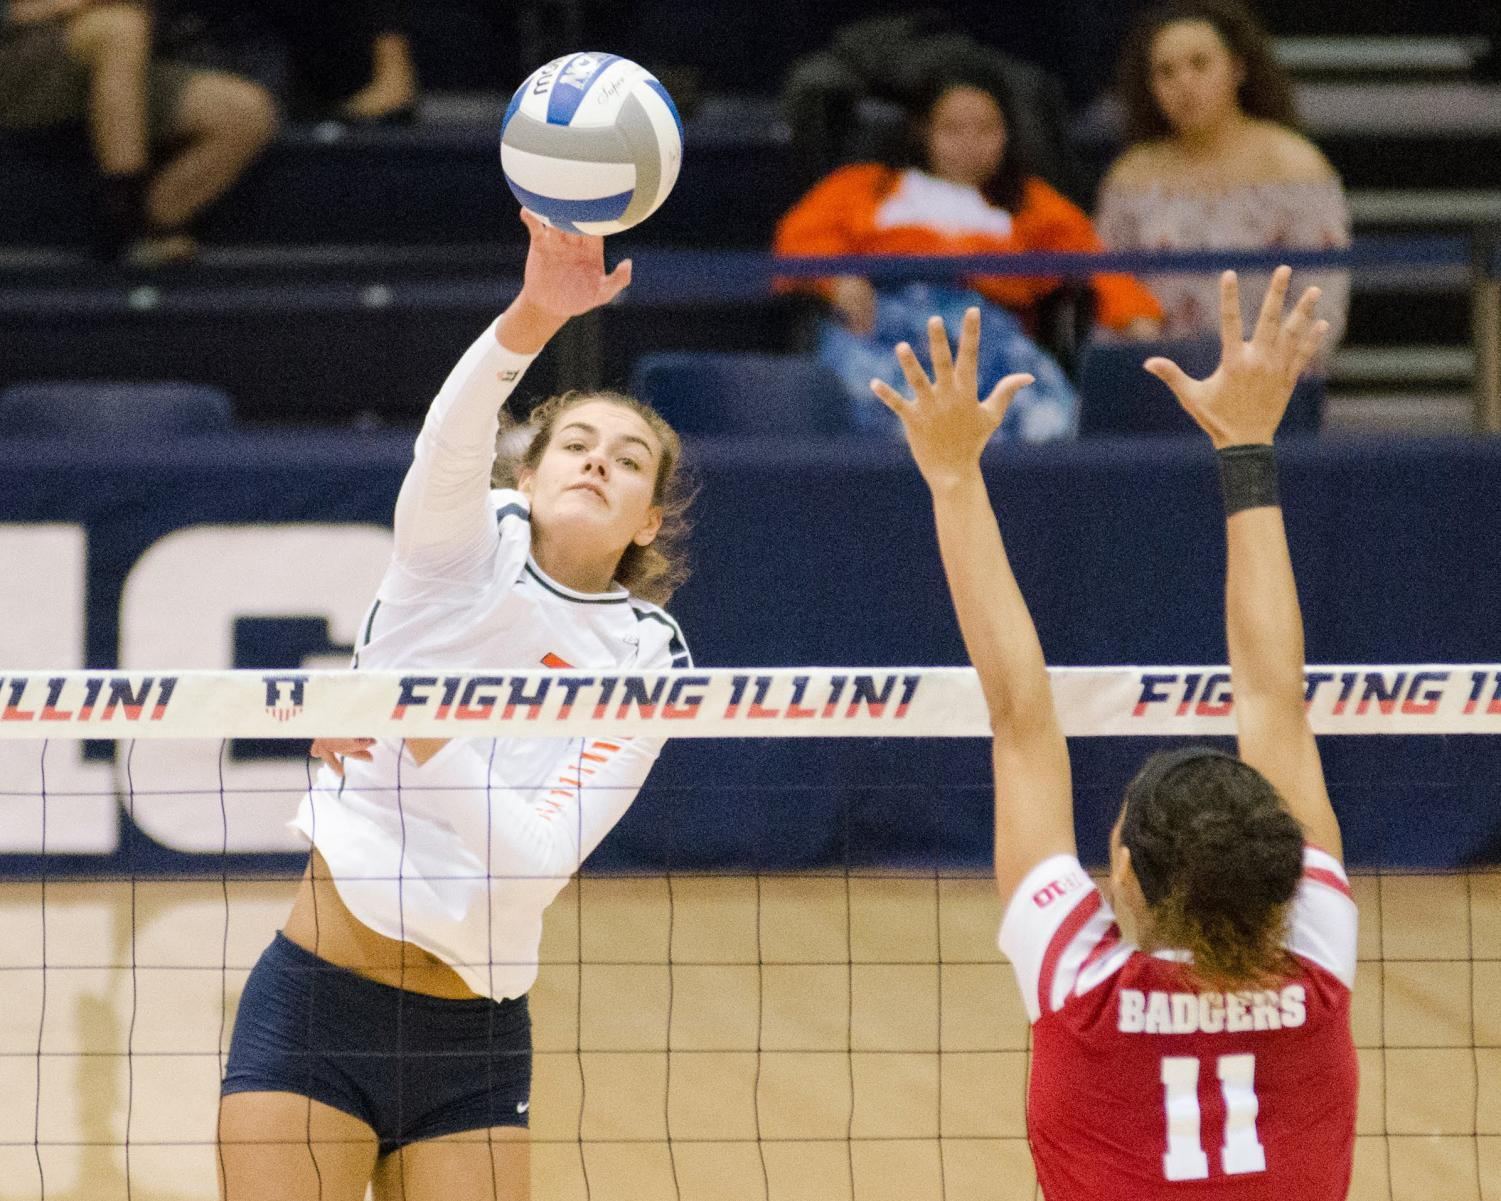 Illinois outside hitter Jacqueline Quade splkes the ball during the game against Wisconsin at Huff Hall on Friday, November 17. The Illini lost 3-1.